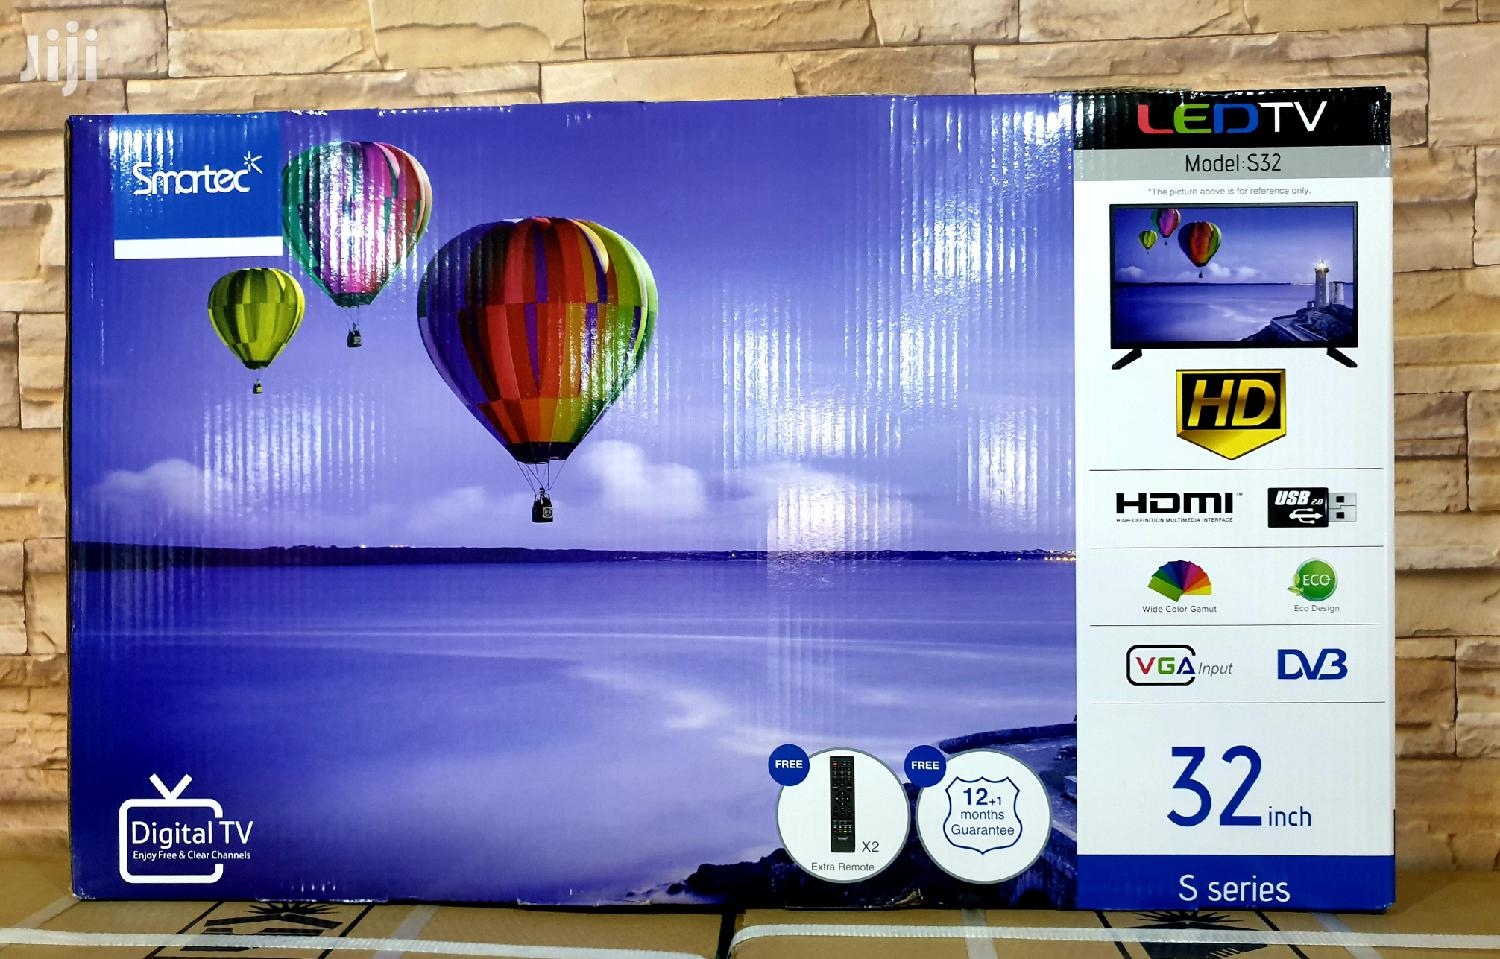 New Smartec LED Flat Screen TV 32 Inches